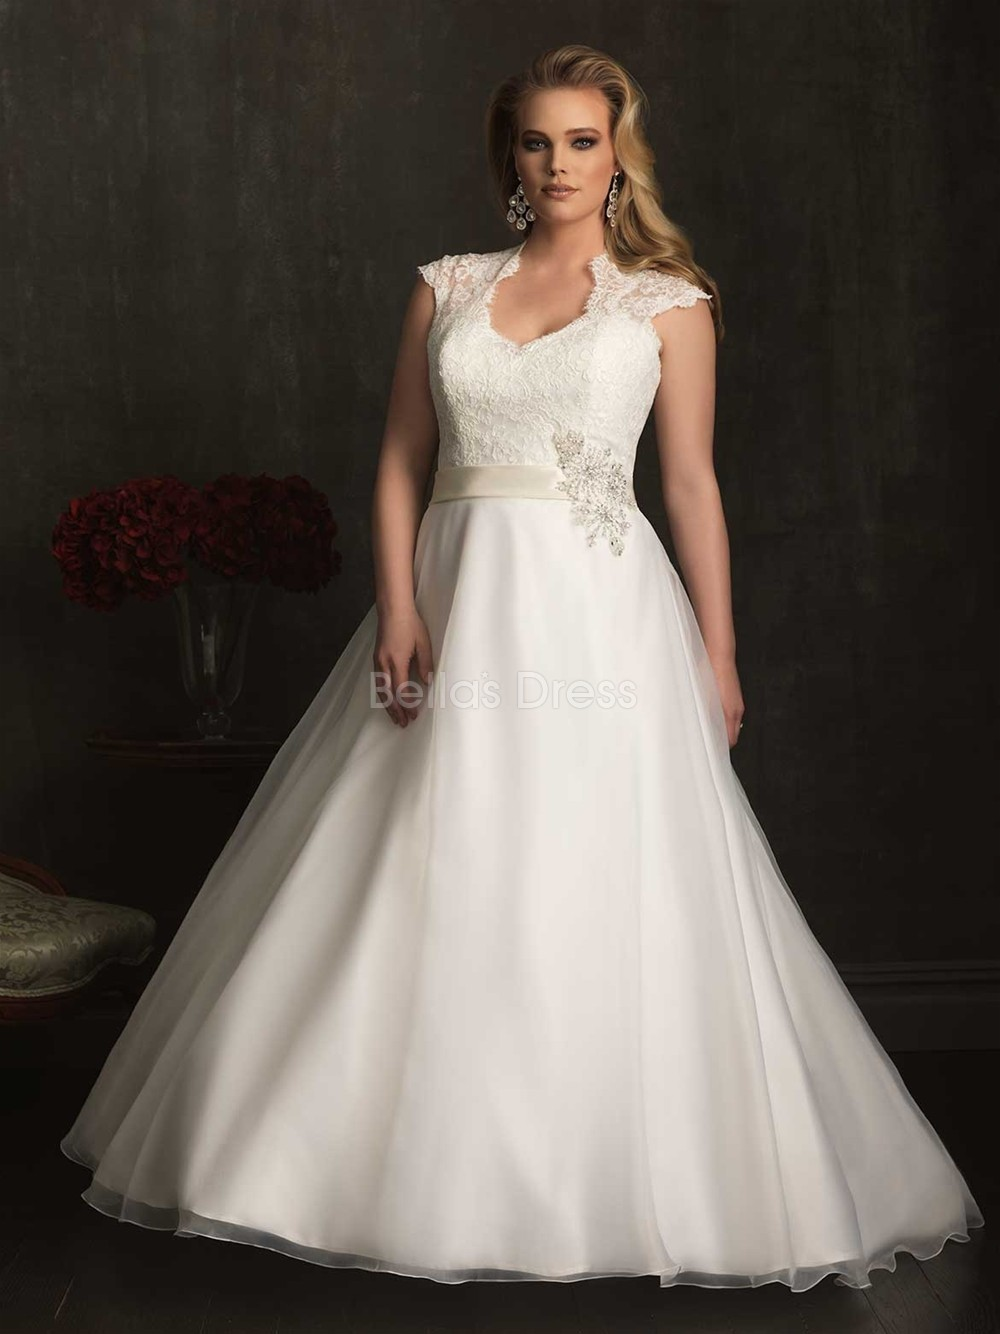 Sydney plus size wedding dresses - Sydney Plus Size Wedding Dresses 2